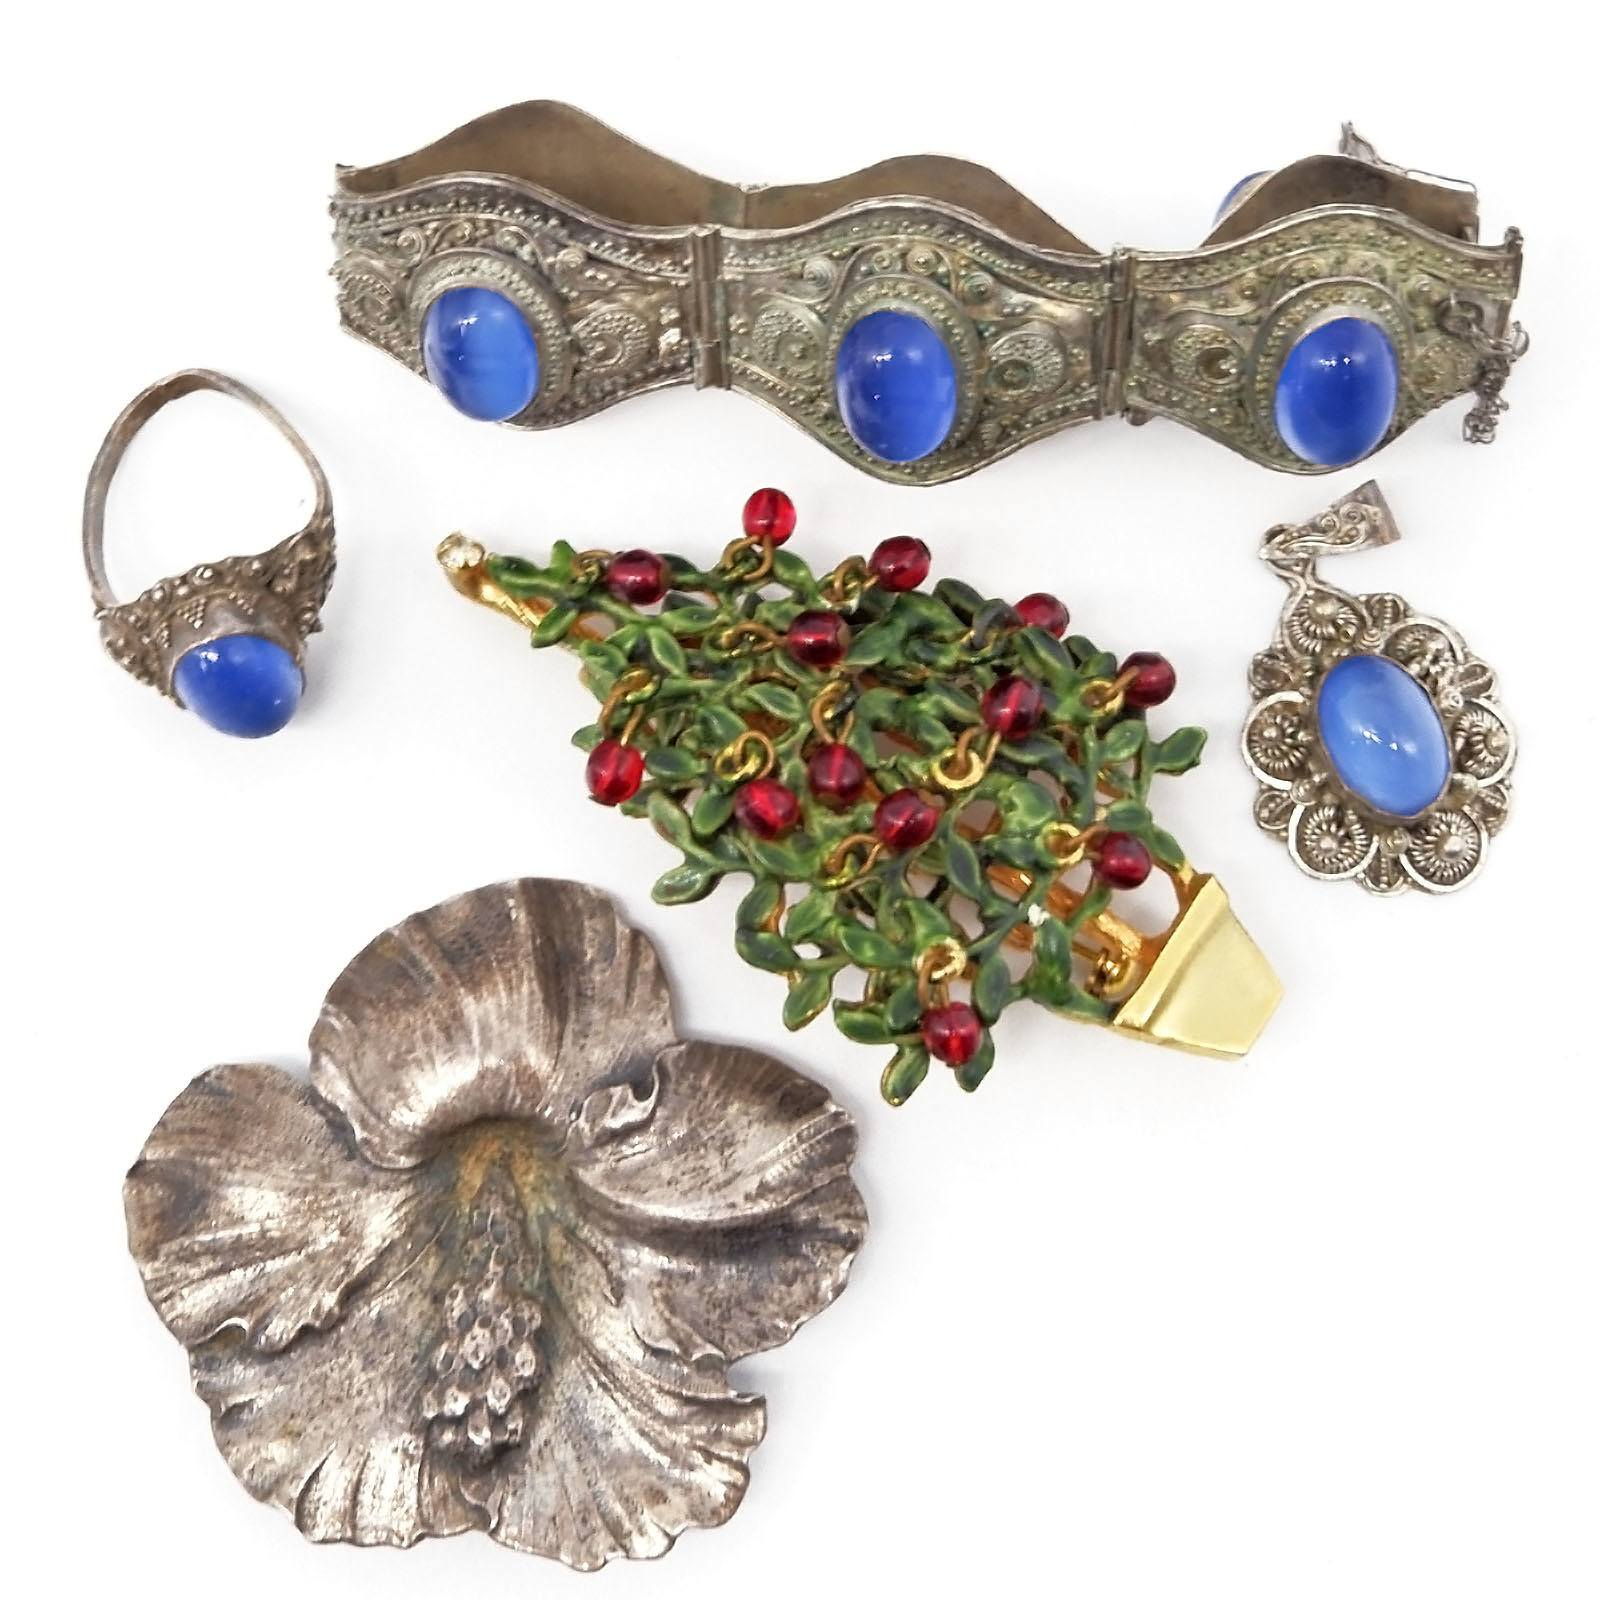 'Sterling Flower Brooch, Indian Filigree Metal Bracelet and Matching Pendant and Ring'